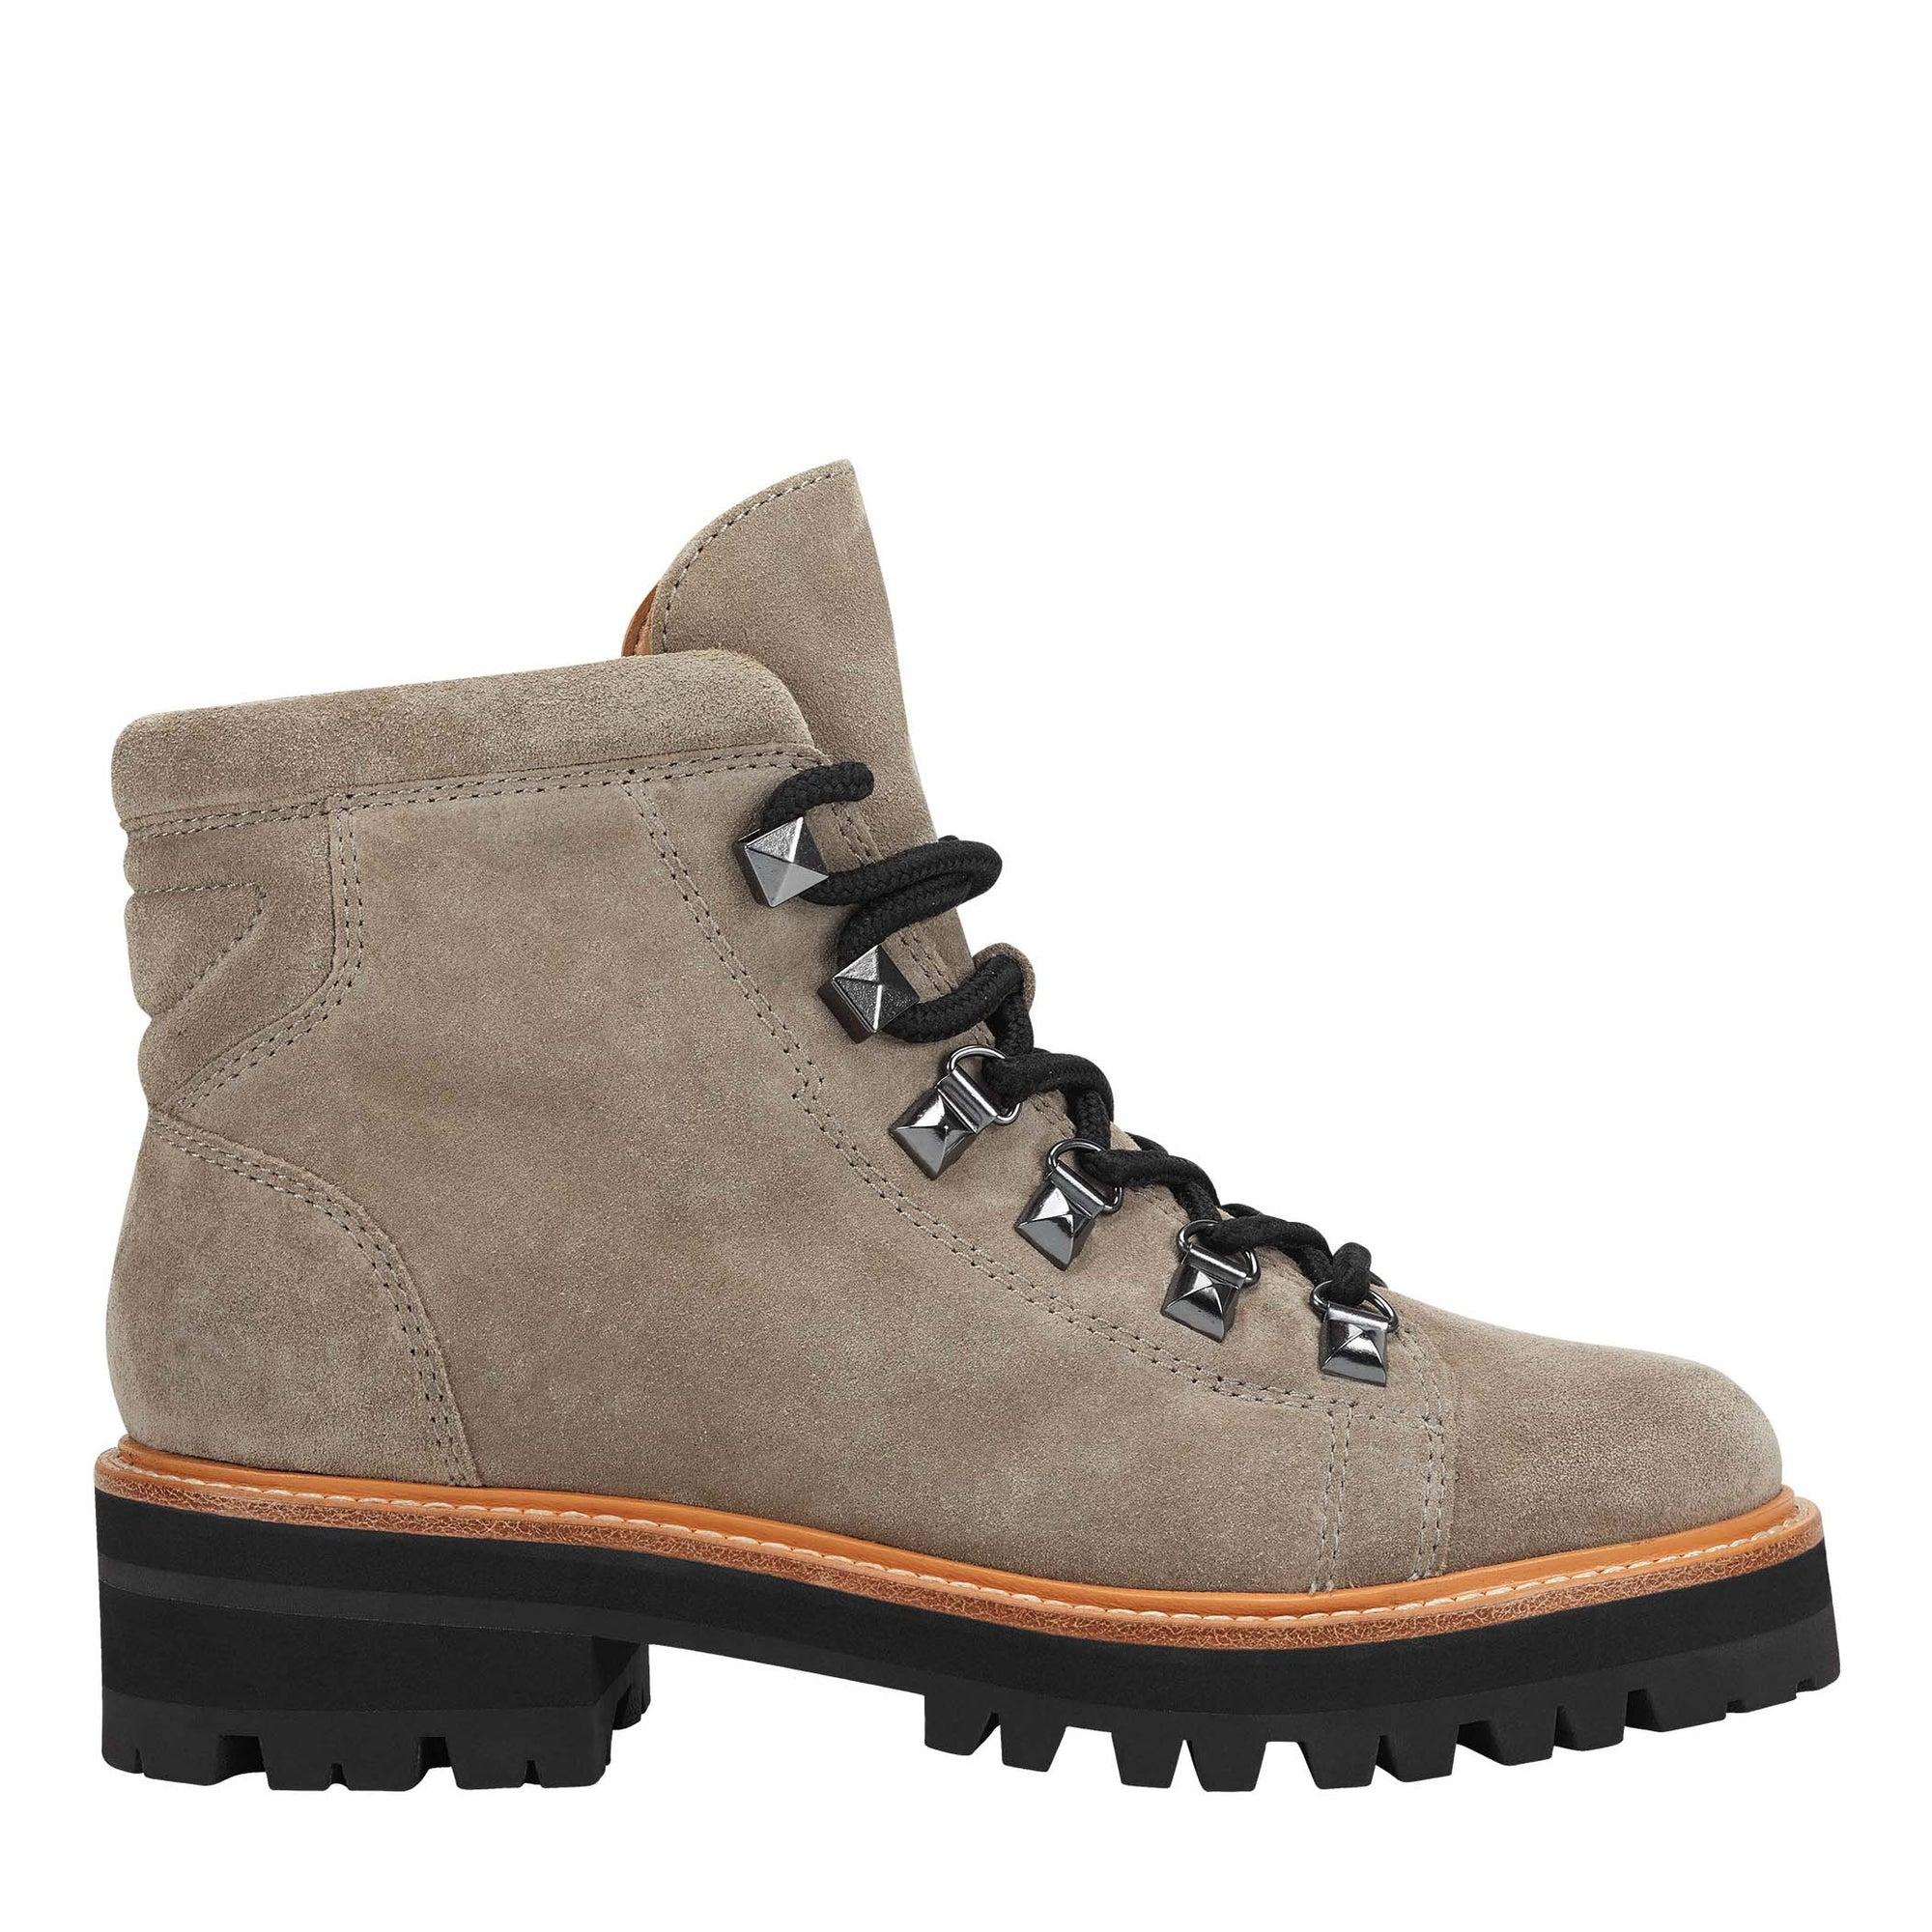 Issy Lugsole Hiker Boot